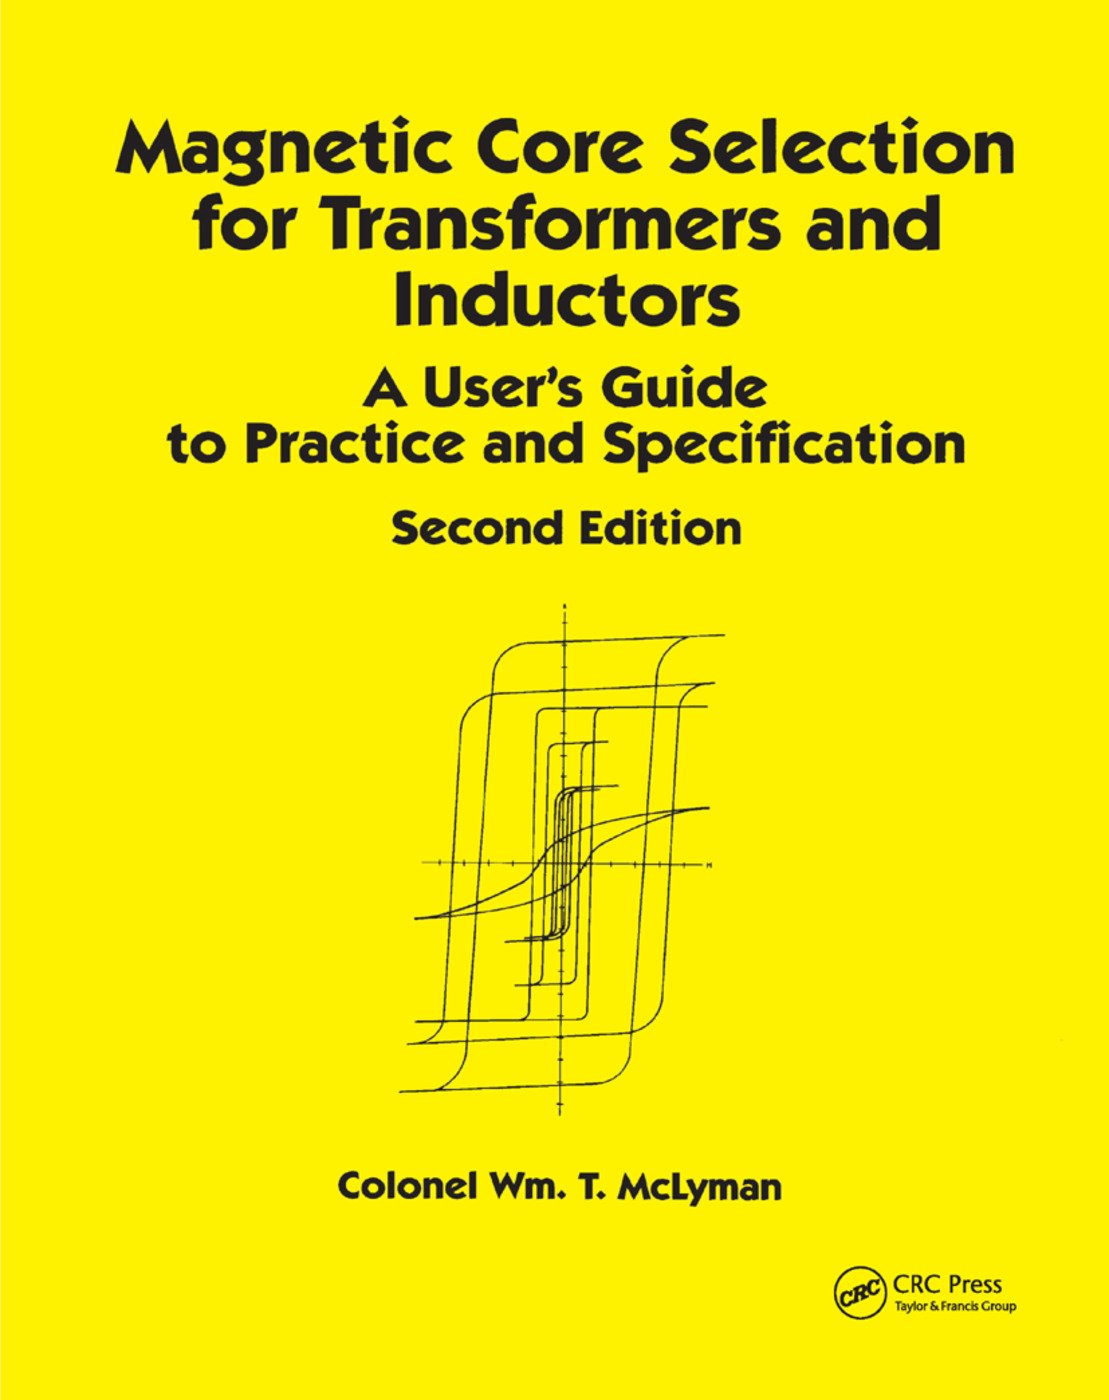 Magnetic Core Selection for Transformers and Inductors: A User's Guide to Practice and Specifications, Second Edition, 2nd Edition (Paperback) book cover